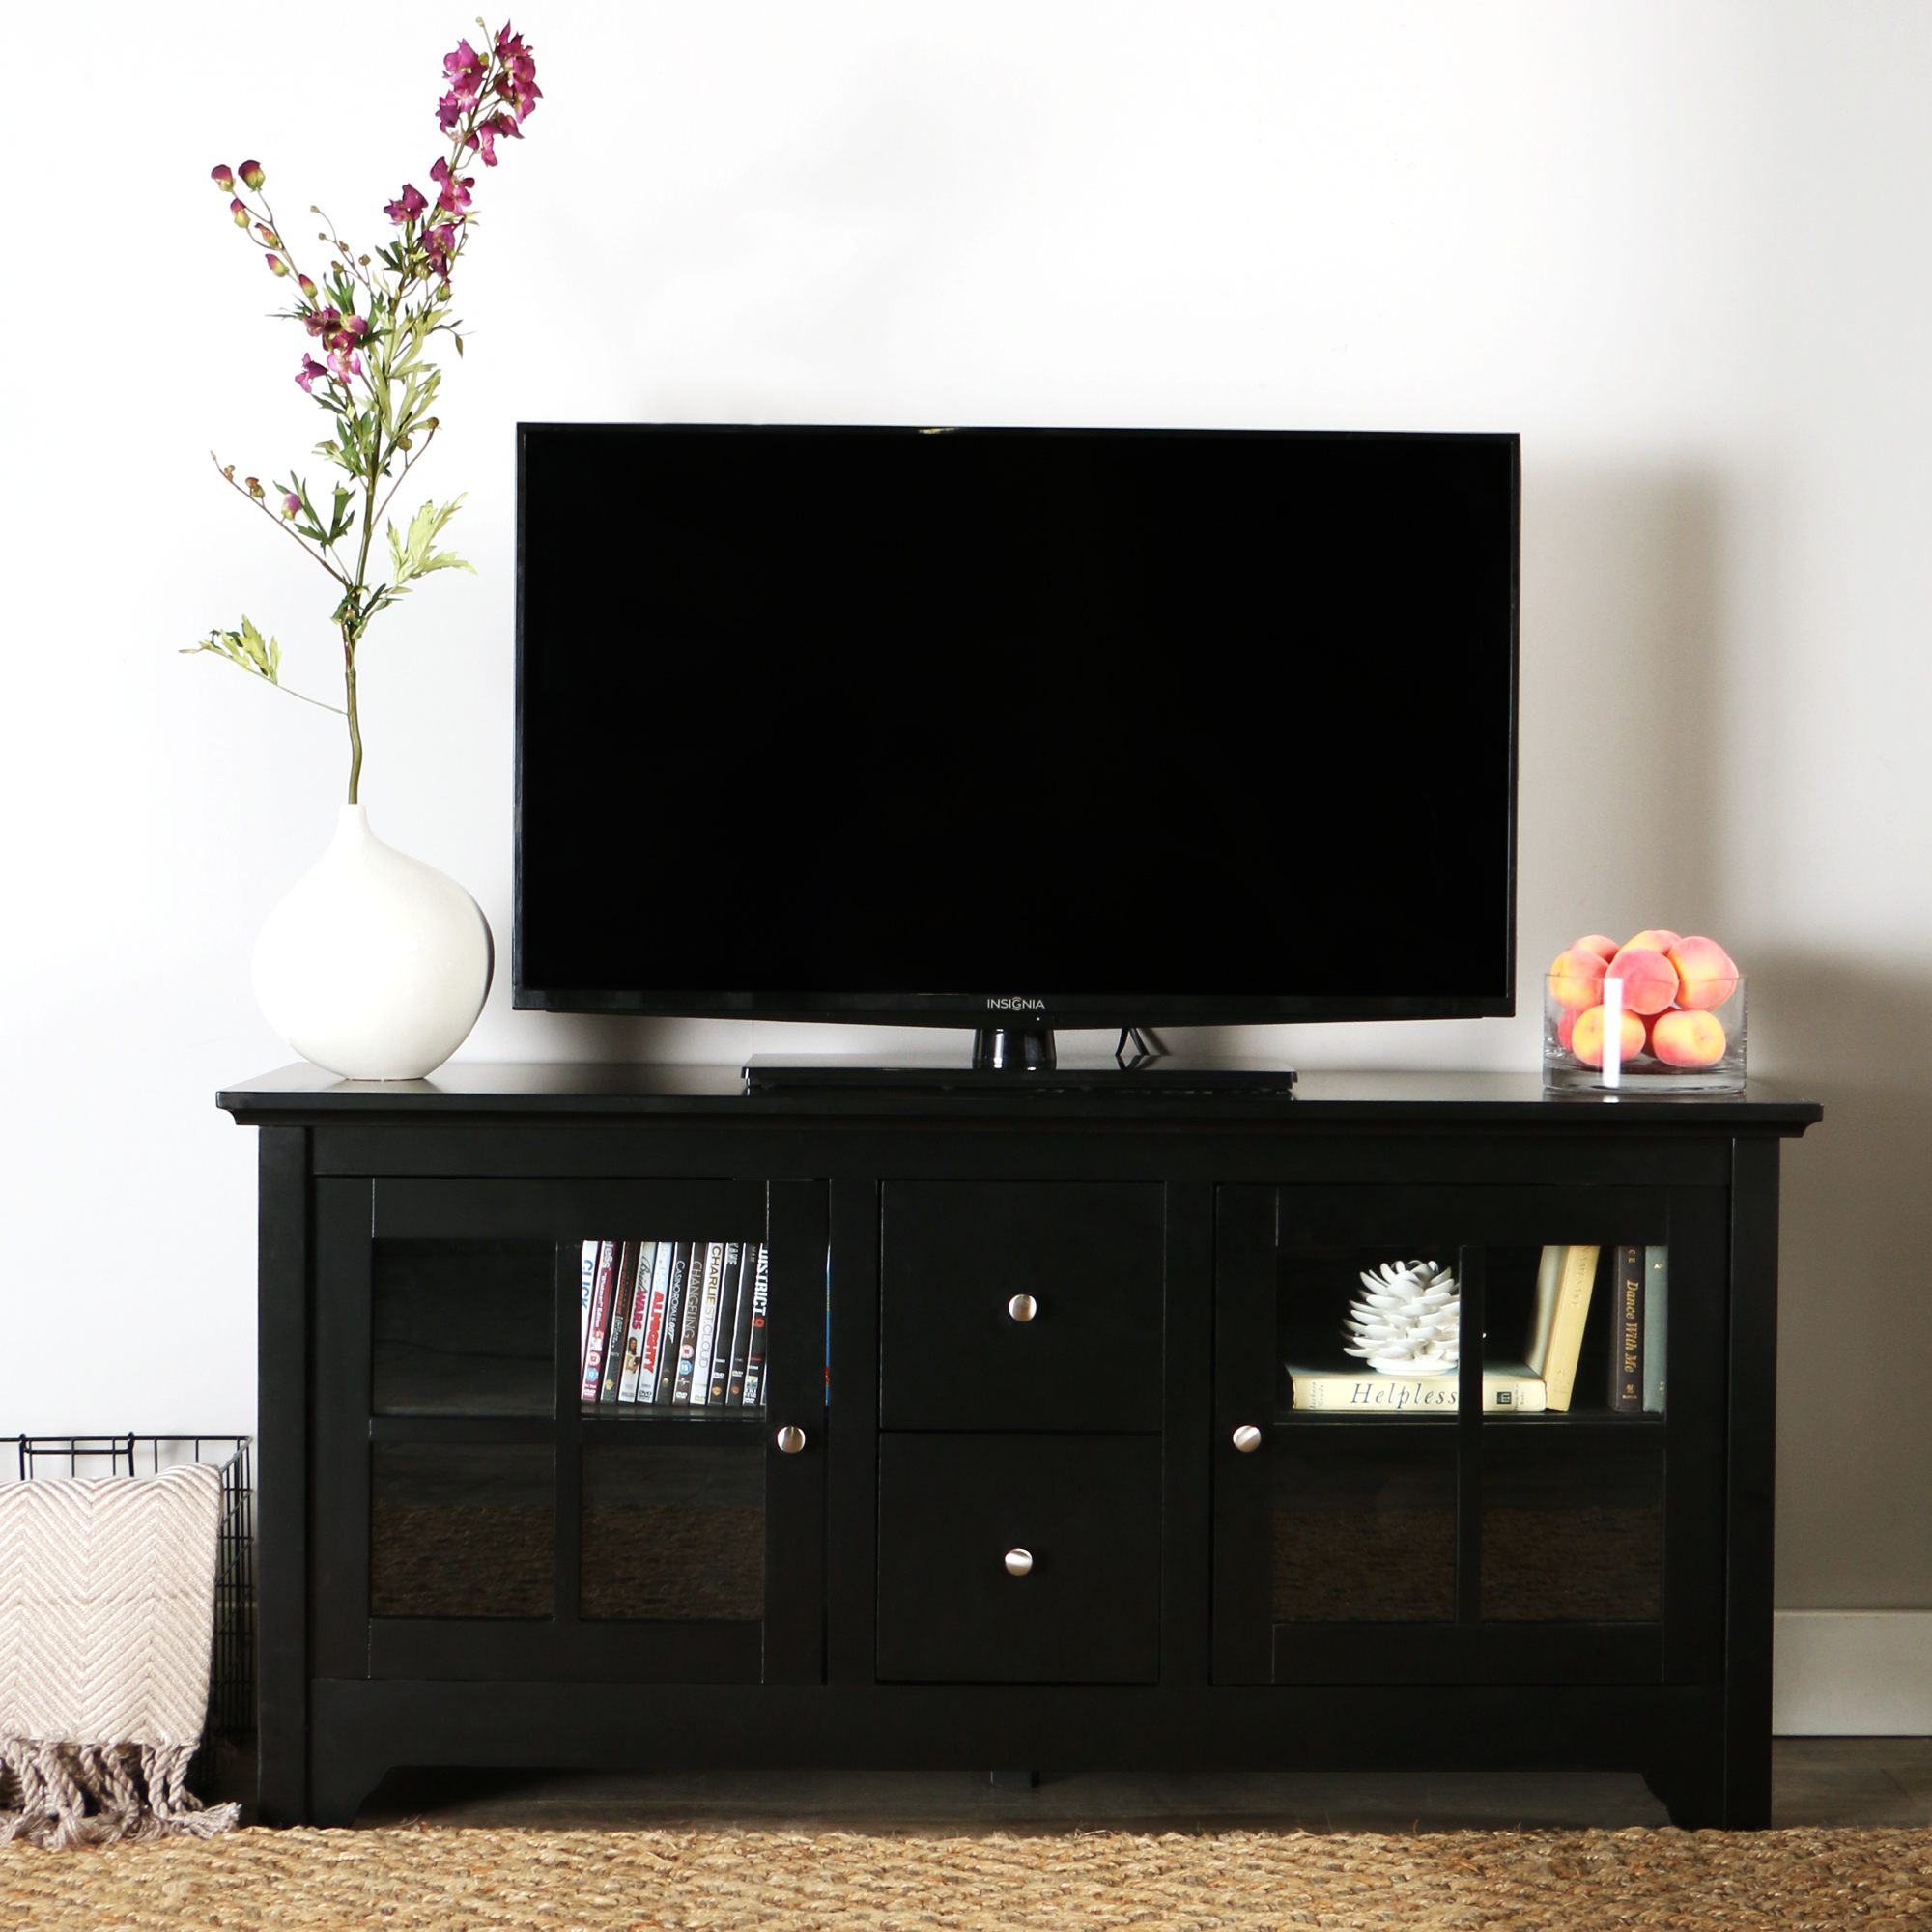 "52"" Transitional Wood Glass Media TV Stand Storage Console Entertainment Center for TVs up to 55"" - Black"